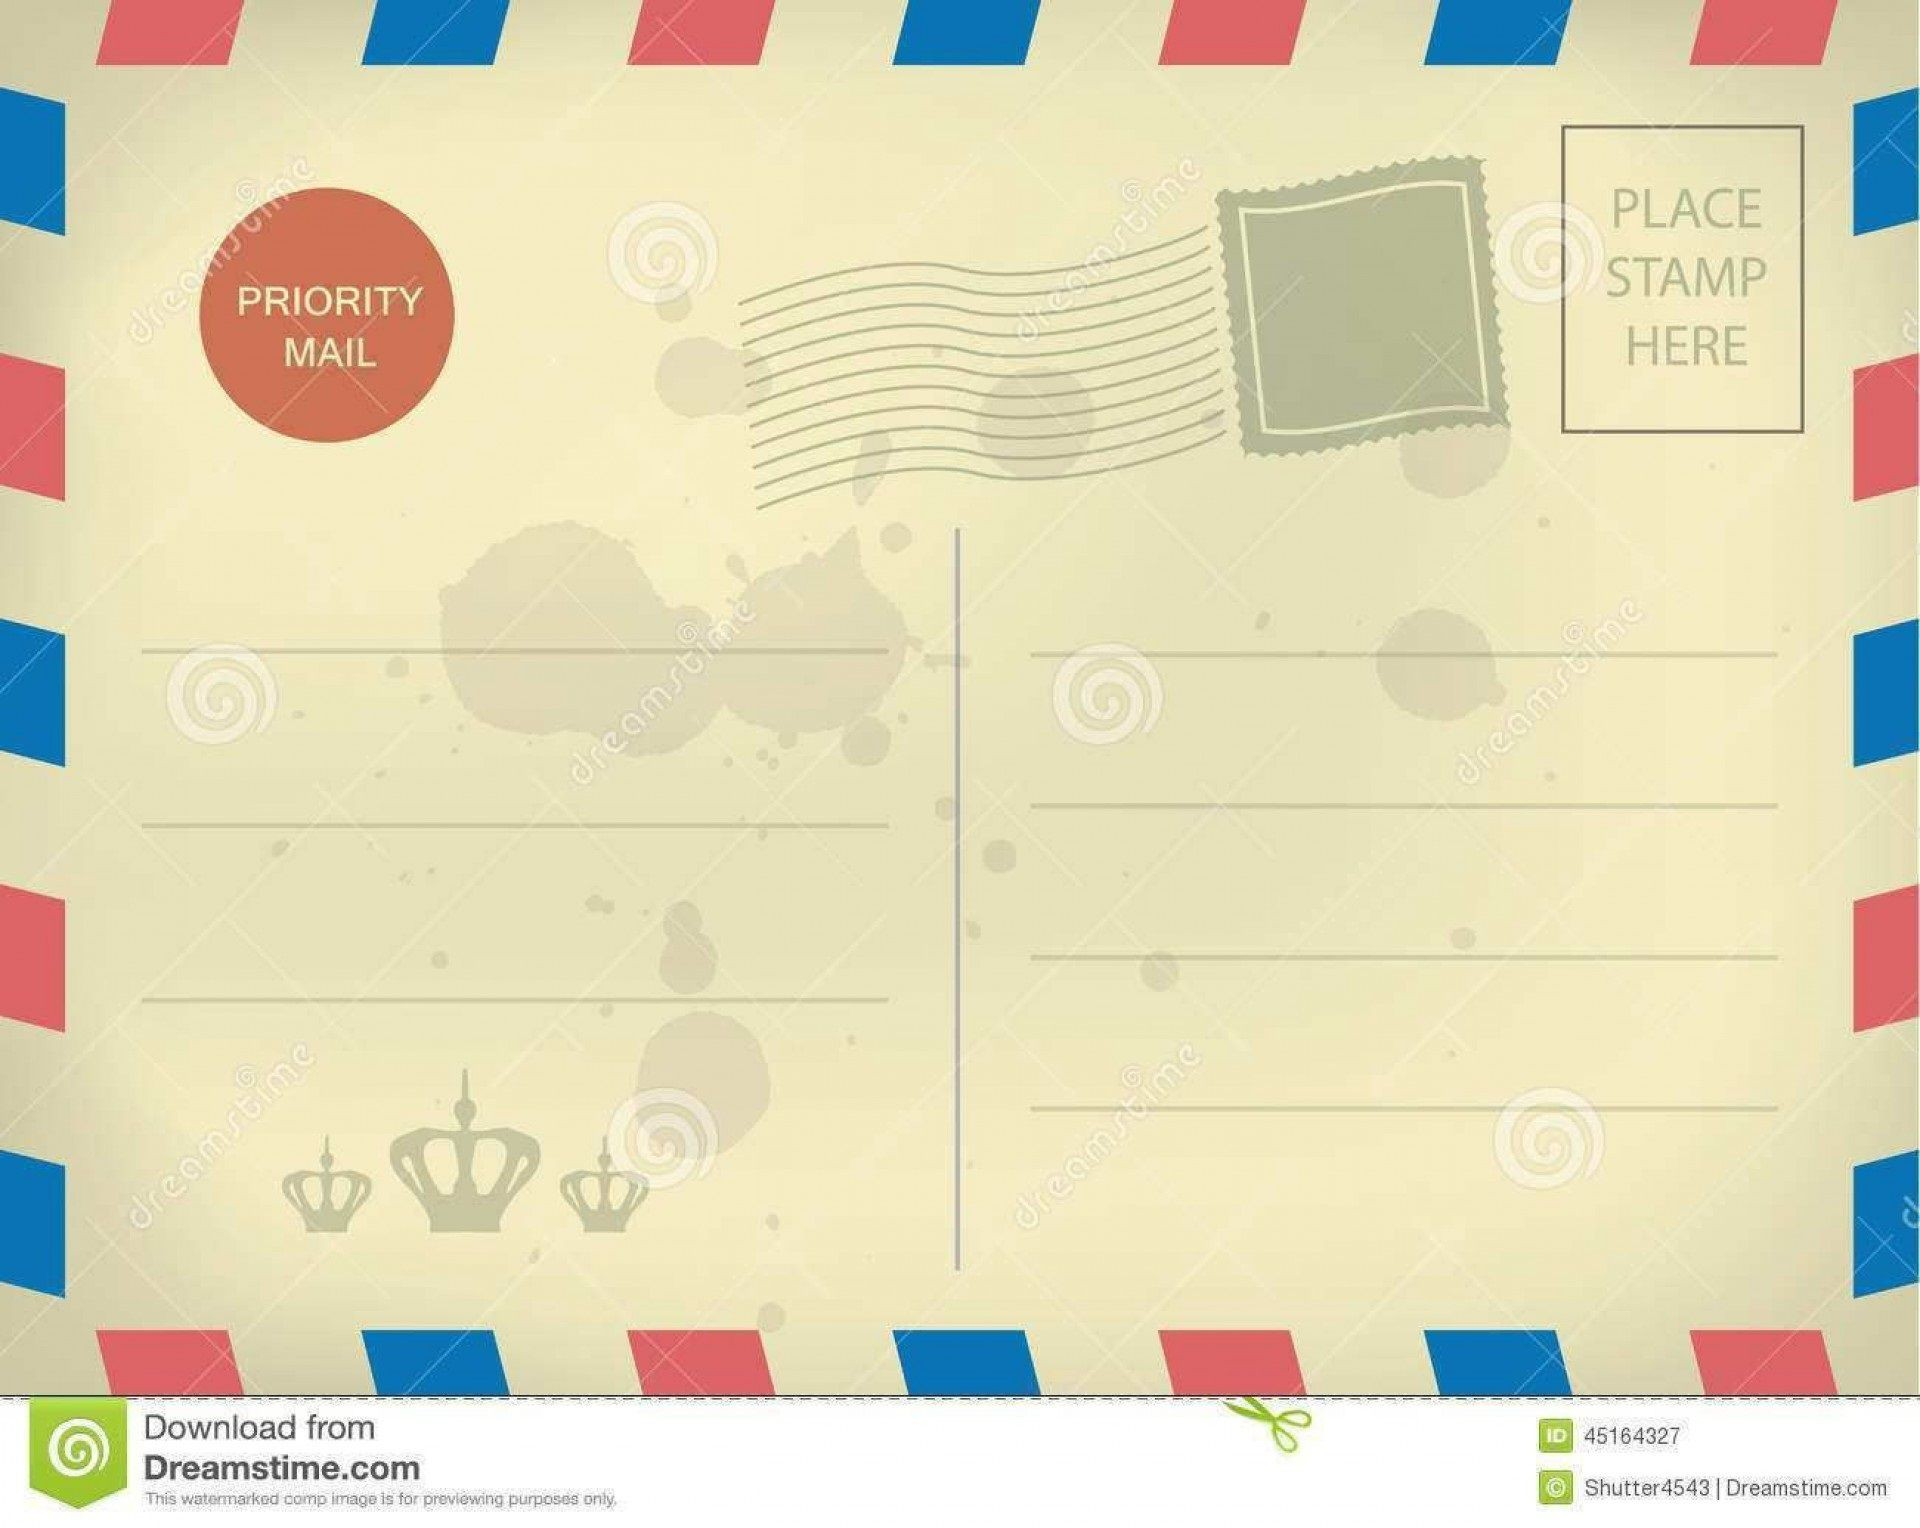 010 Impressive Postcard Layout For Microsoft Word High Resolution  4 Template1920